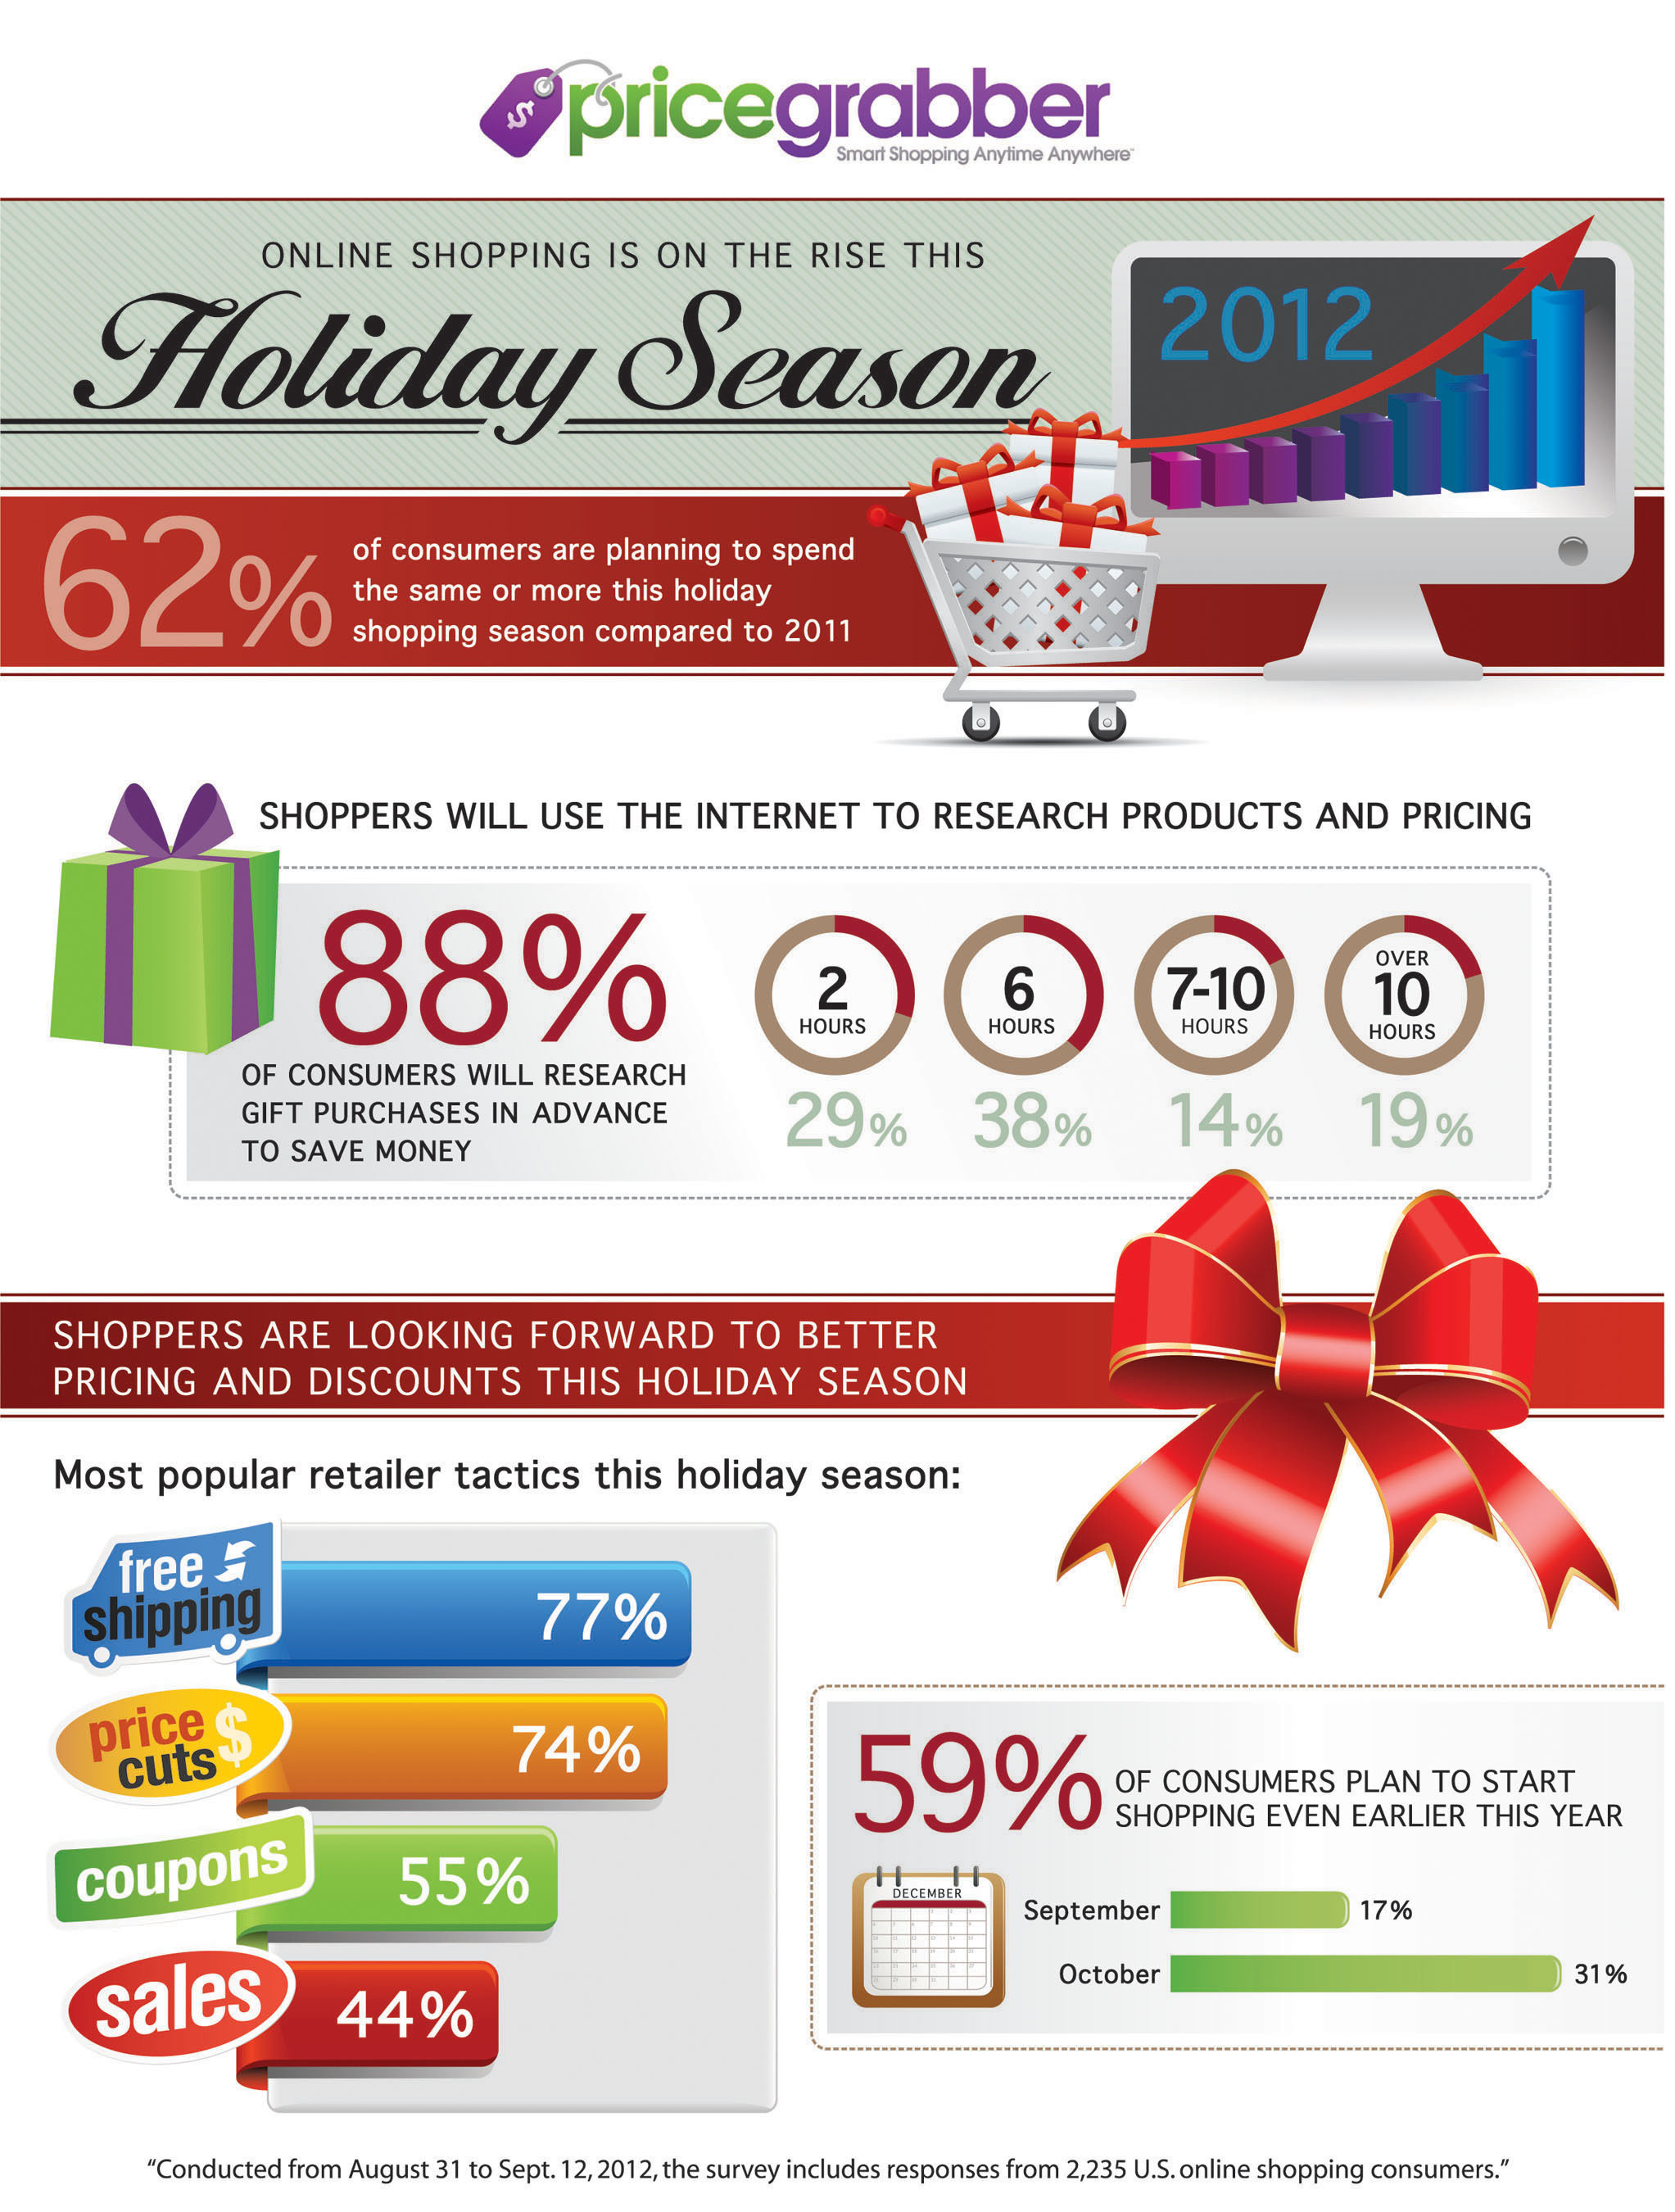 PriceGrabber Infographic: Online Shopping is on the Rise this Holiday Season.  (PRNewsFoto/PriceGrabber.com)